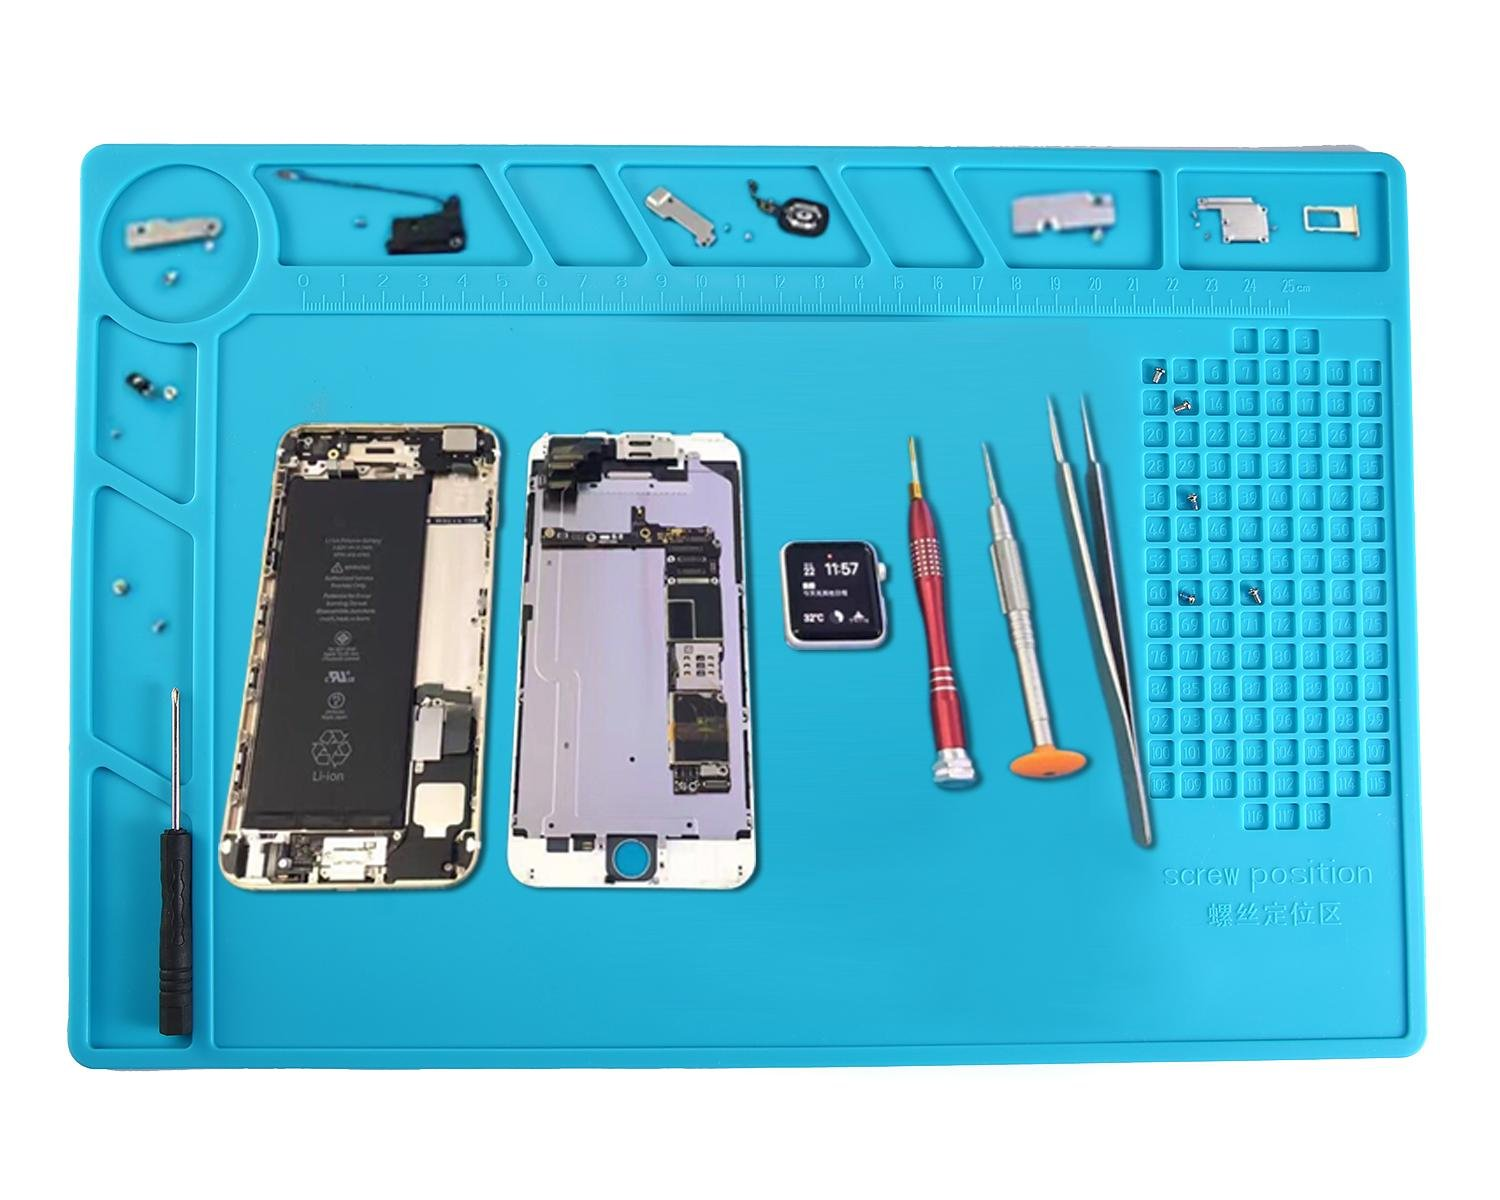 Leegoal(TM) Heat Insulation Silicone Pad Desk Mat Soldering Repair Station Maintenance Platform for for Soldering Iron, Repairing Phone Computer, and More,Blue